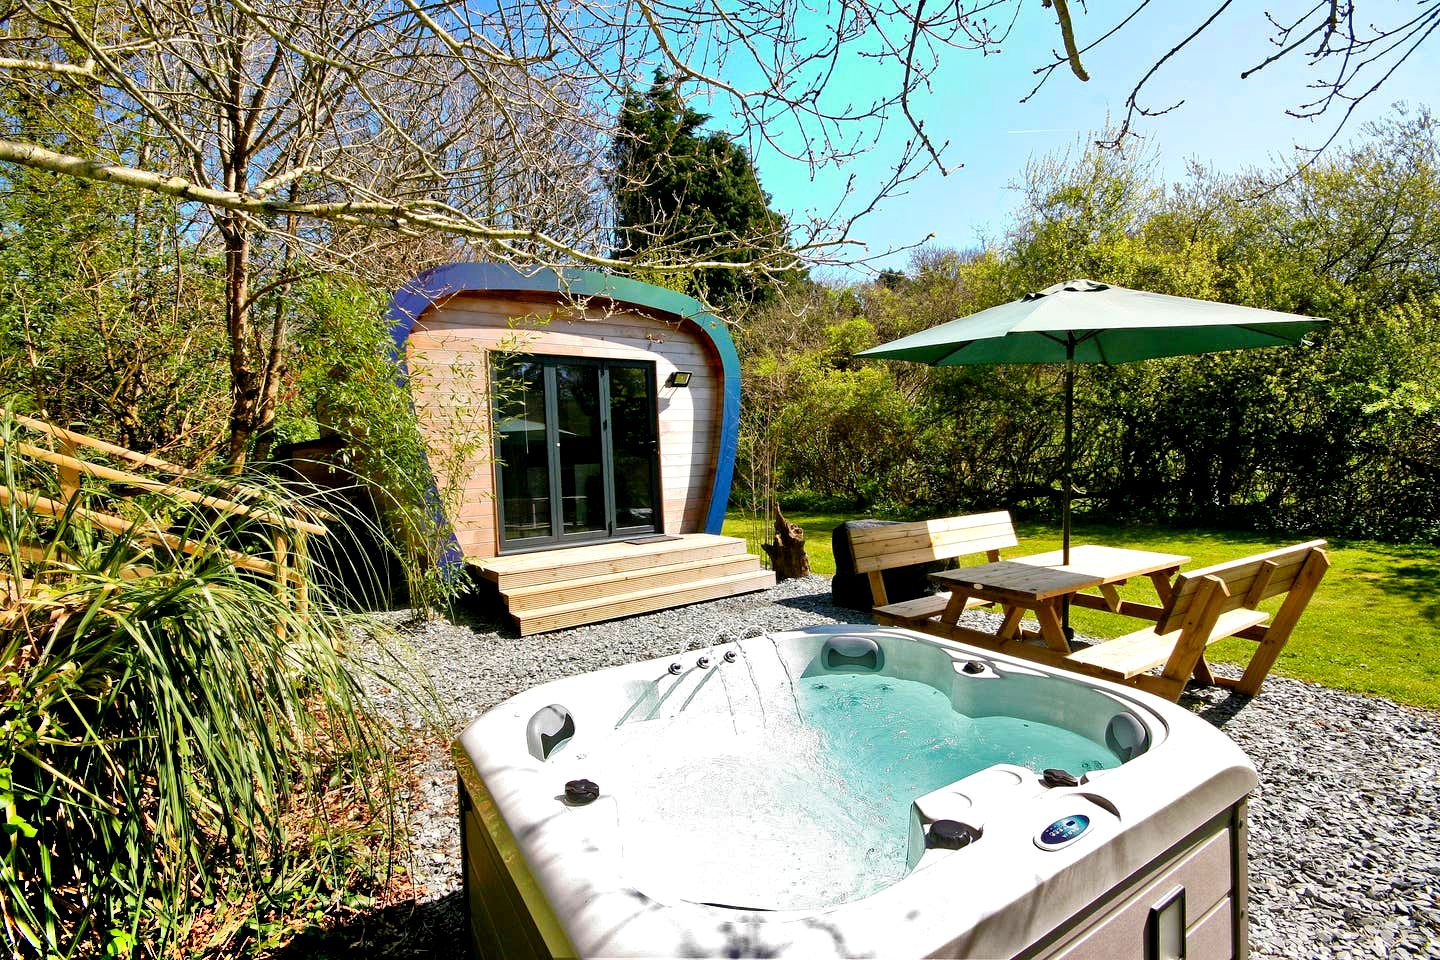 This Devon glamping pod is great for a holiday in England